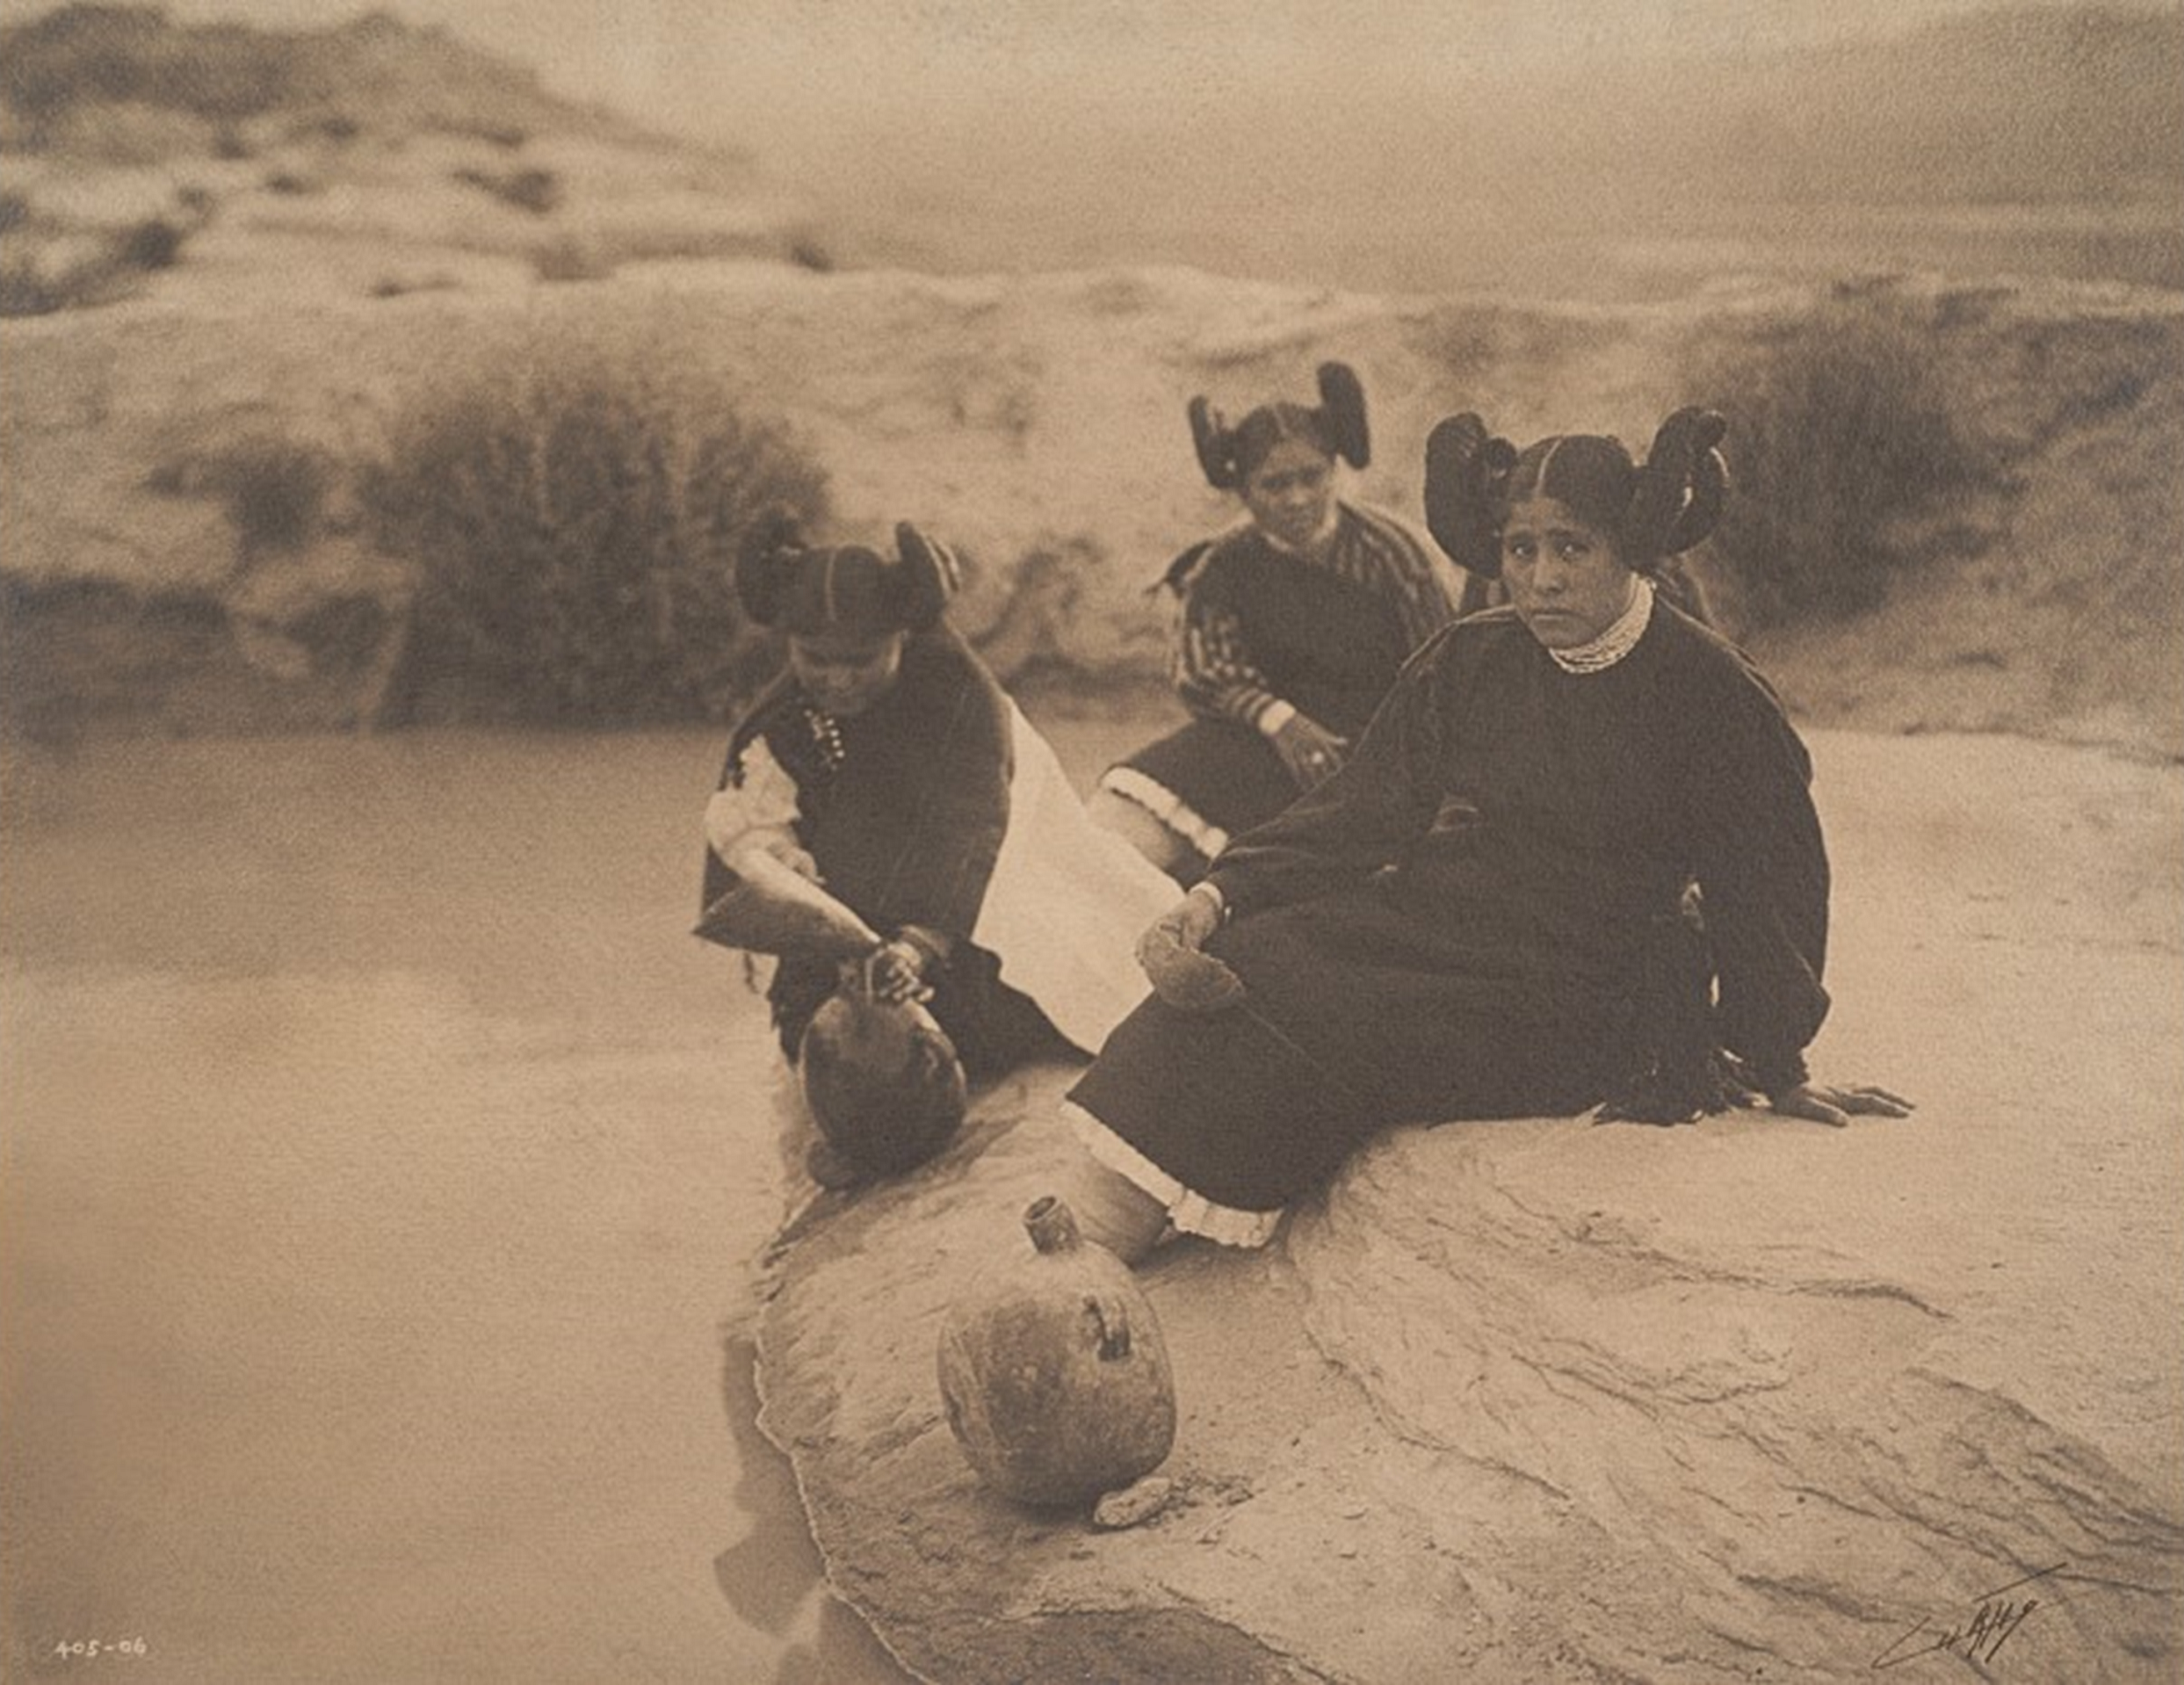 An Evening in Hopi Land (Edward S. Curtis, 1906)